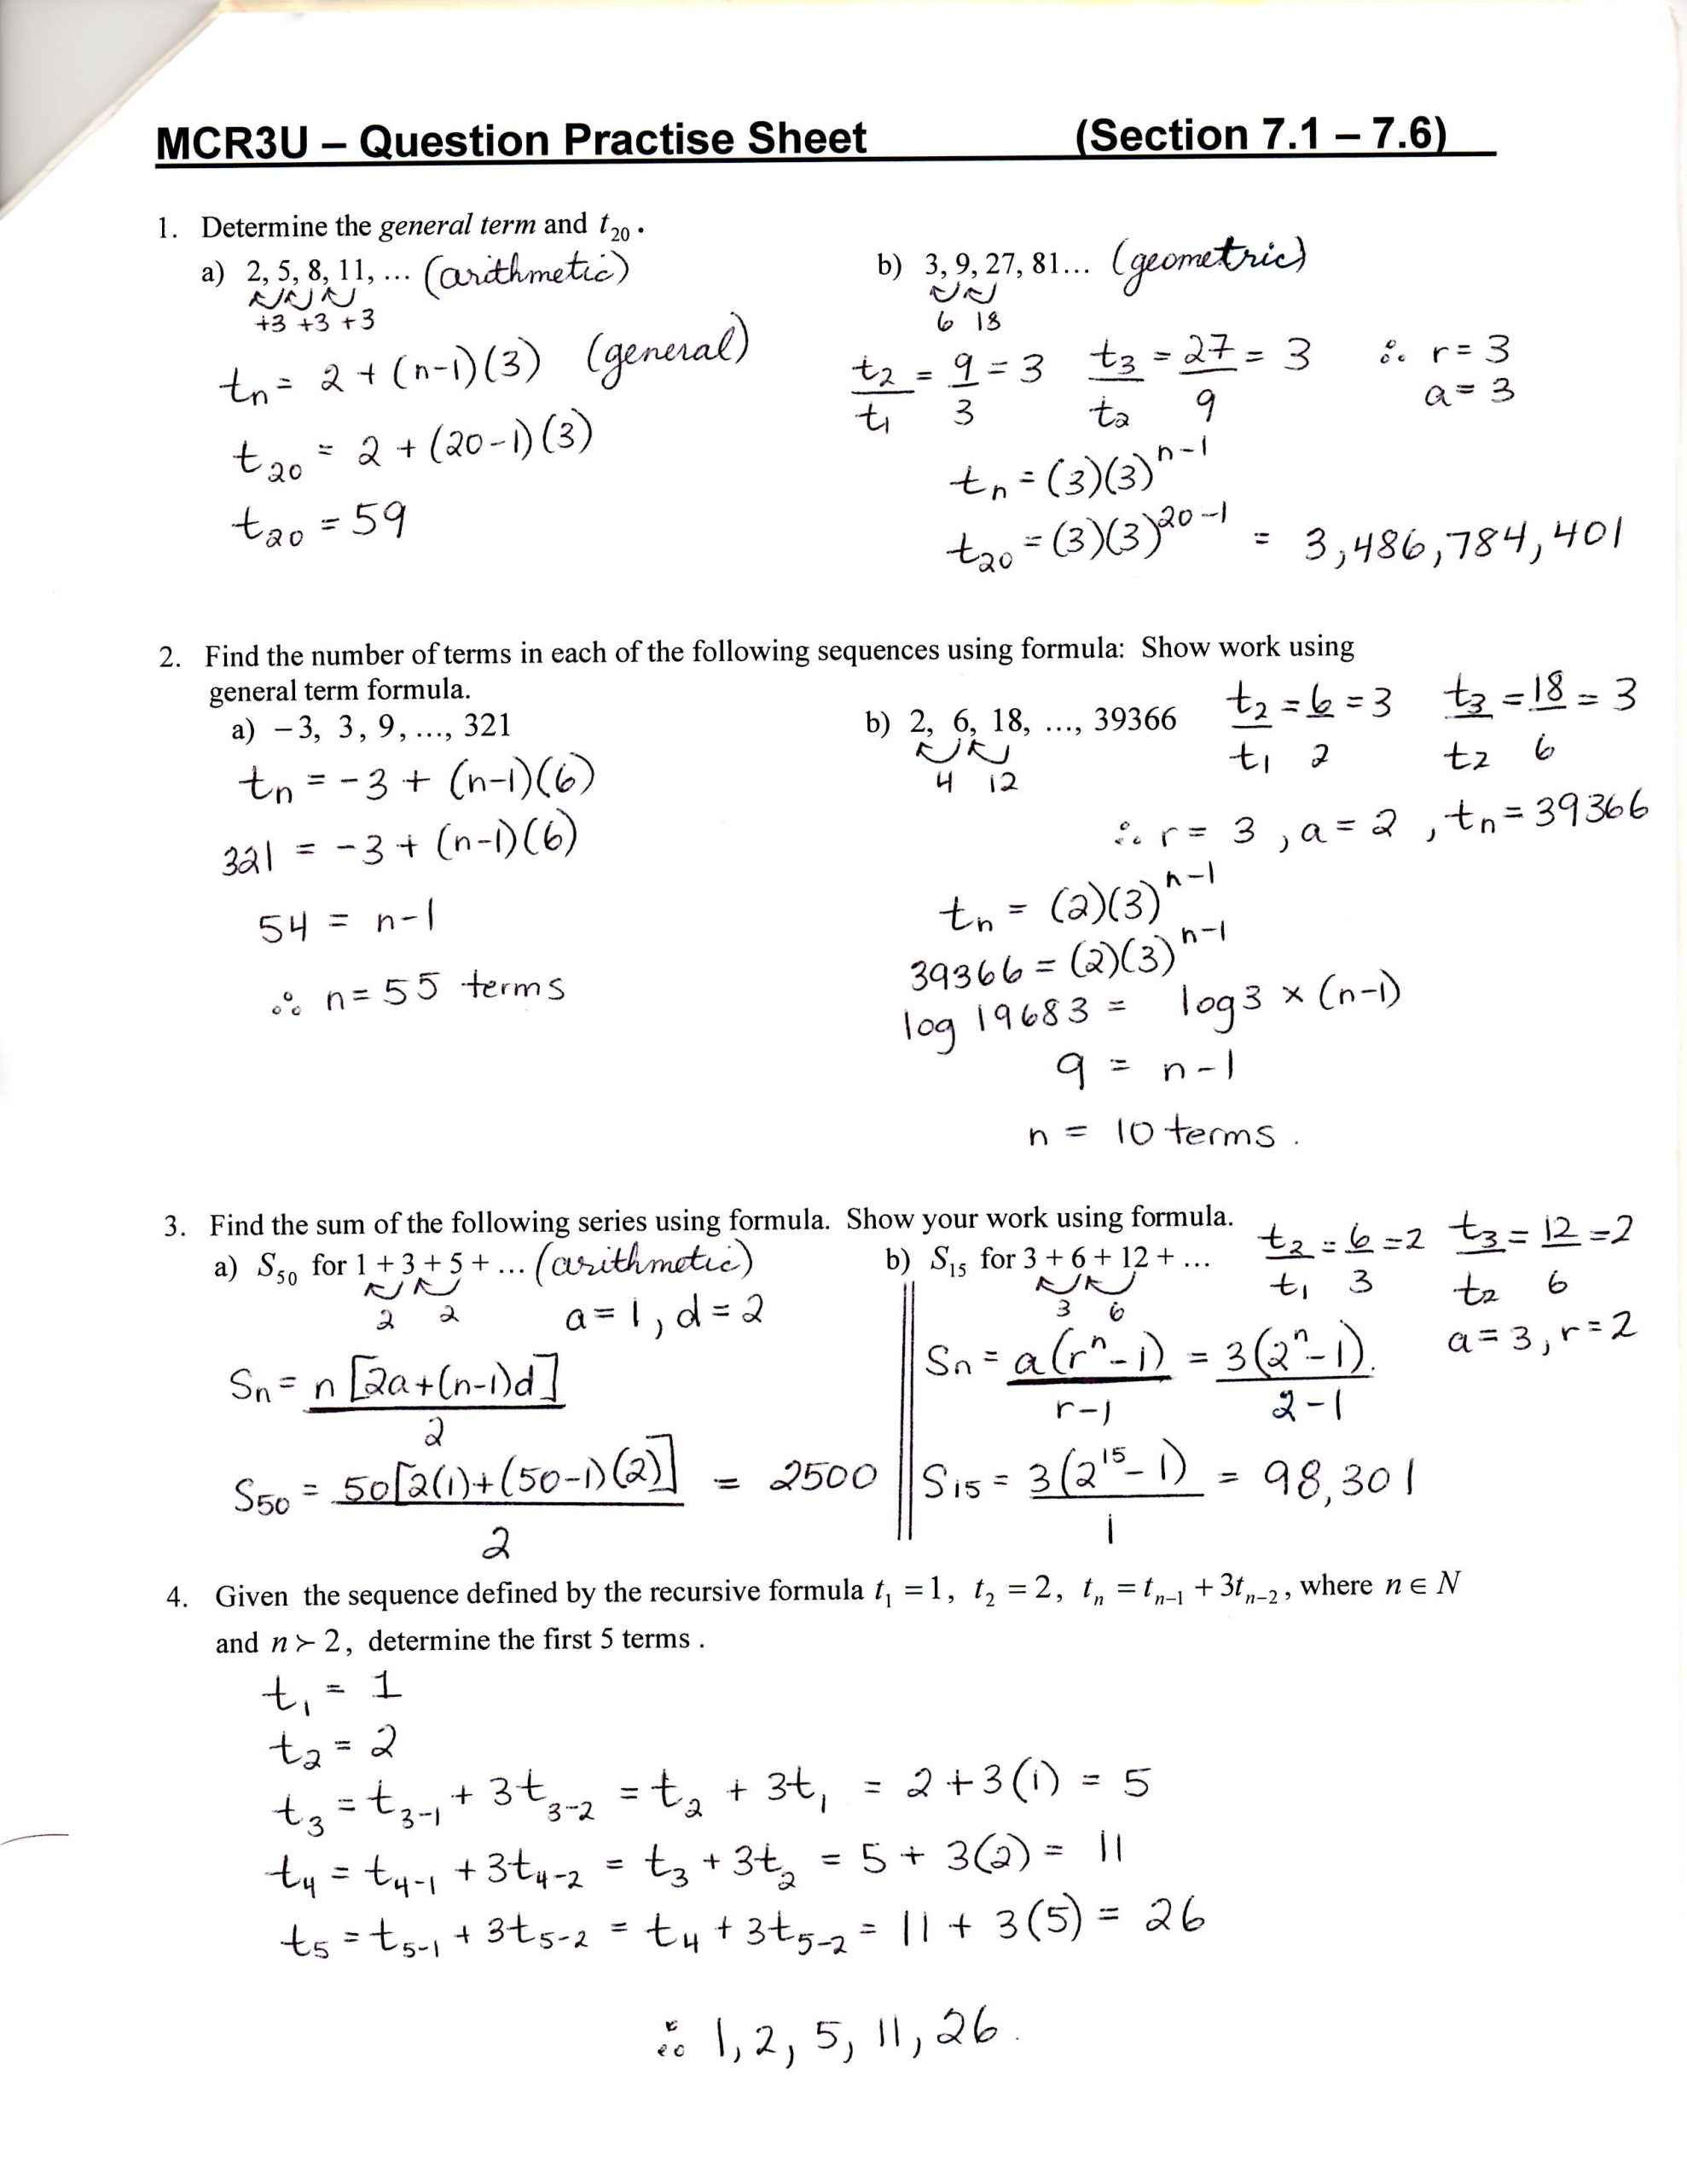 Sequences and Series Worksheet Answers